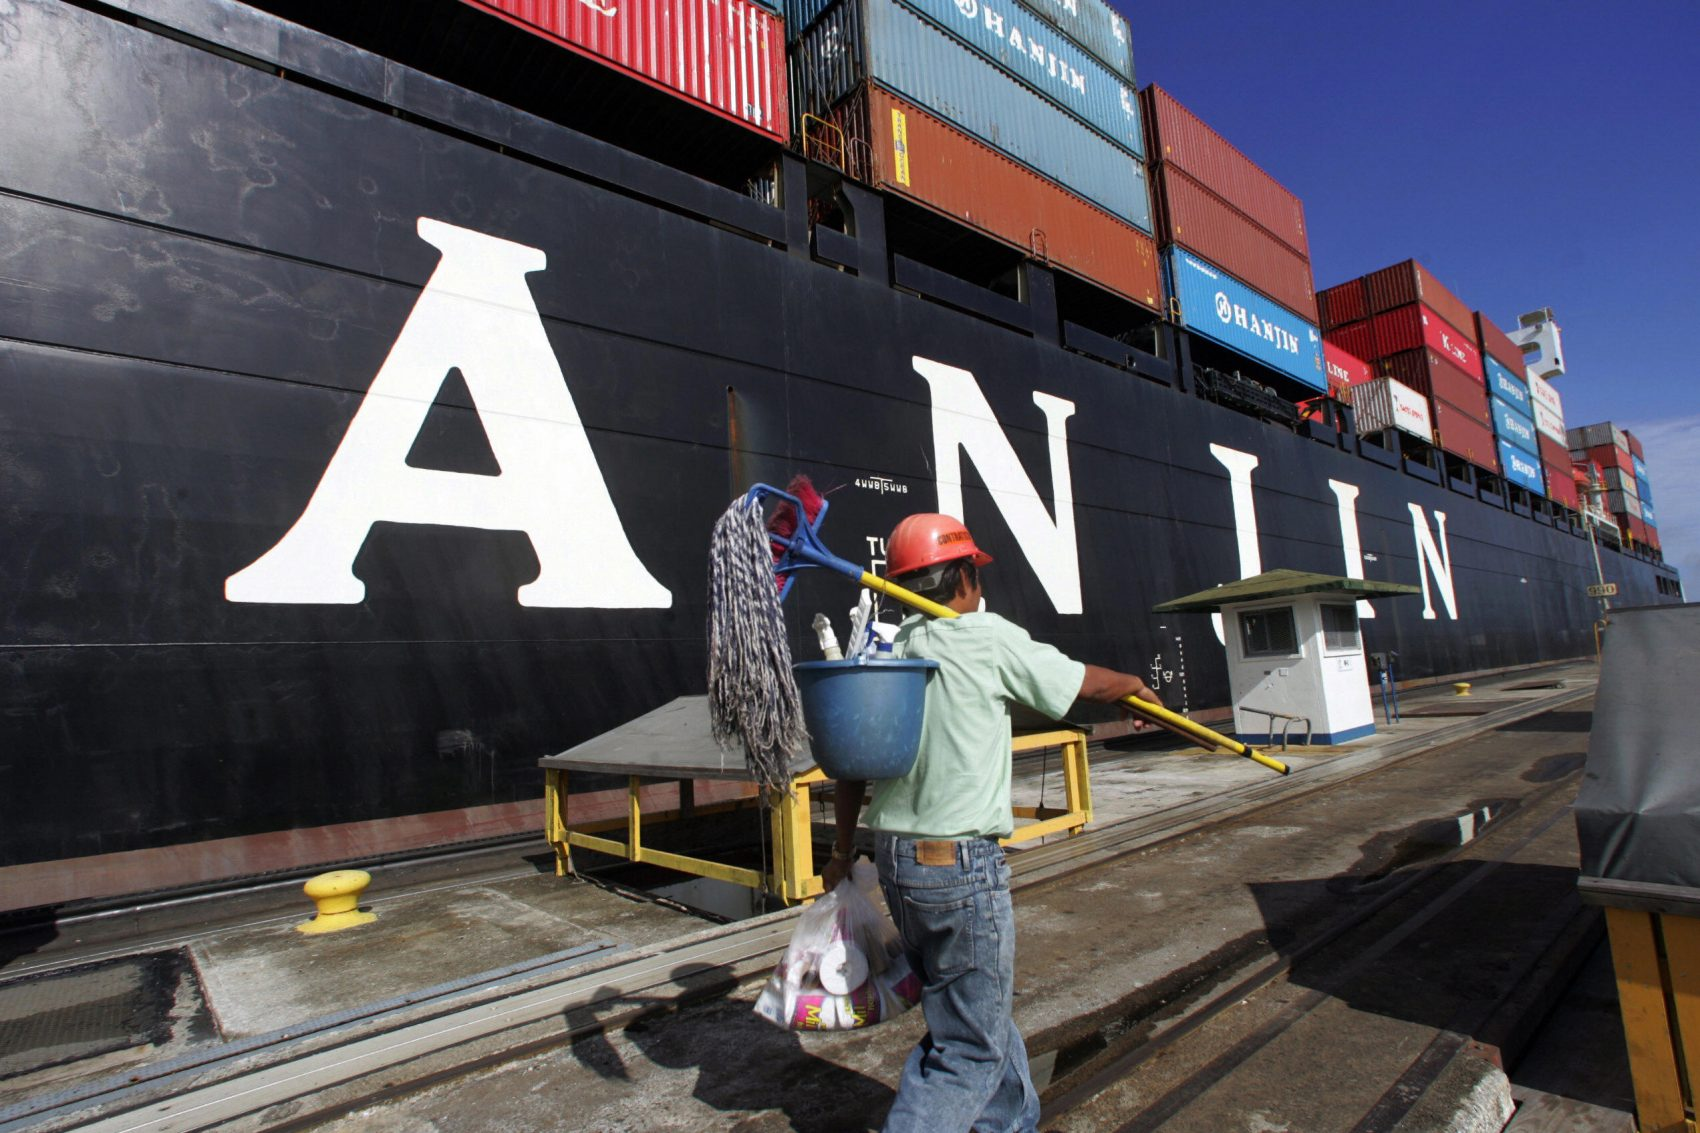 A worker walks next to a Hanjin cargo ship anchored in the Atlantic gate of the Panama Canal on Oct. 20, 2006. (Orlando Sierra/AFP/Getty Images)